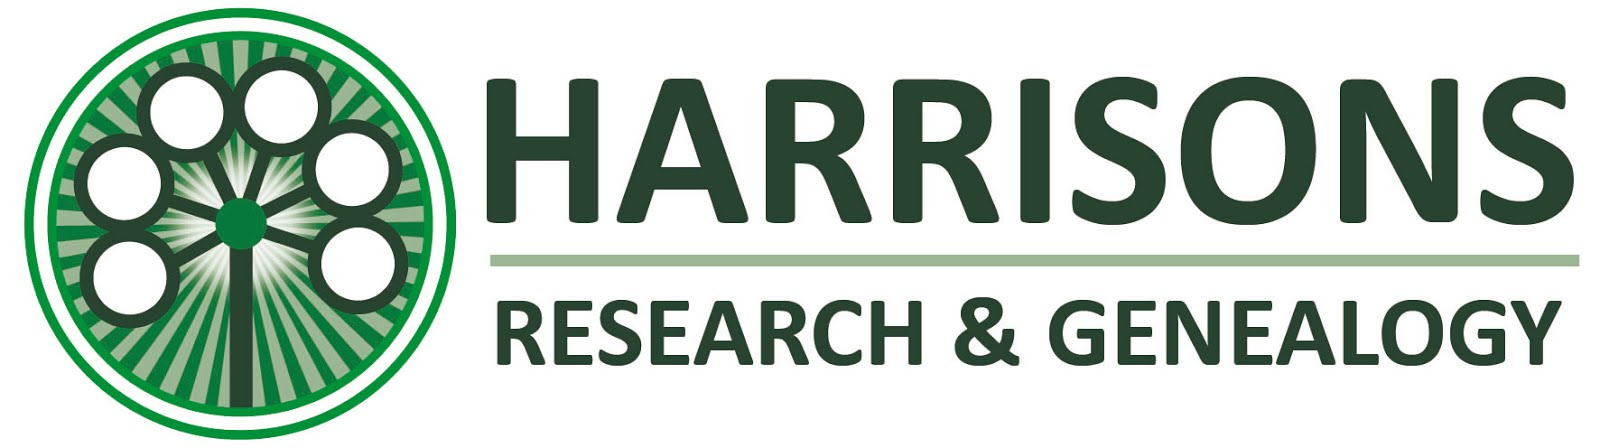 Harrison Research & Genealogy